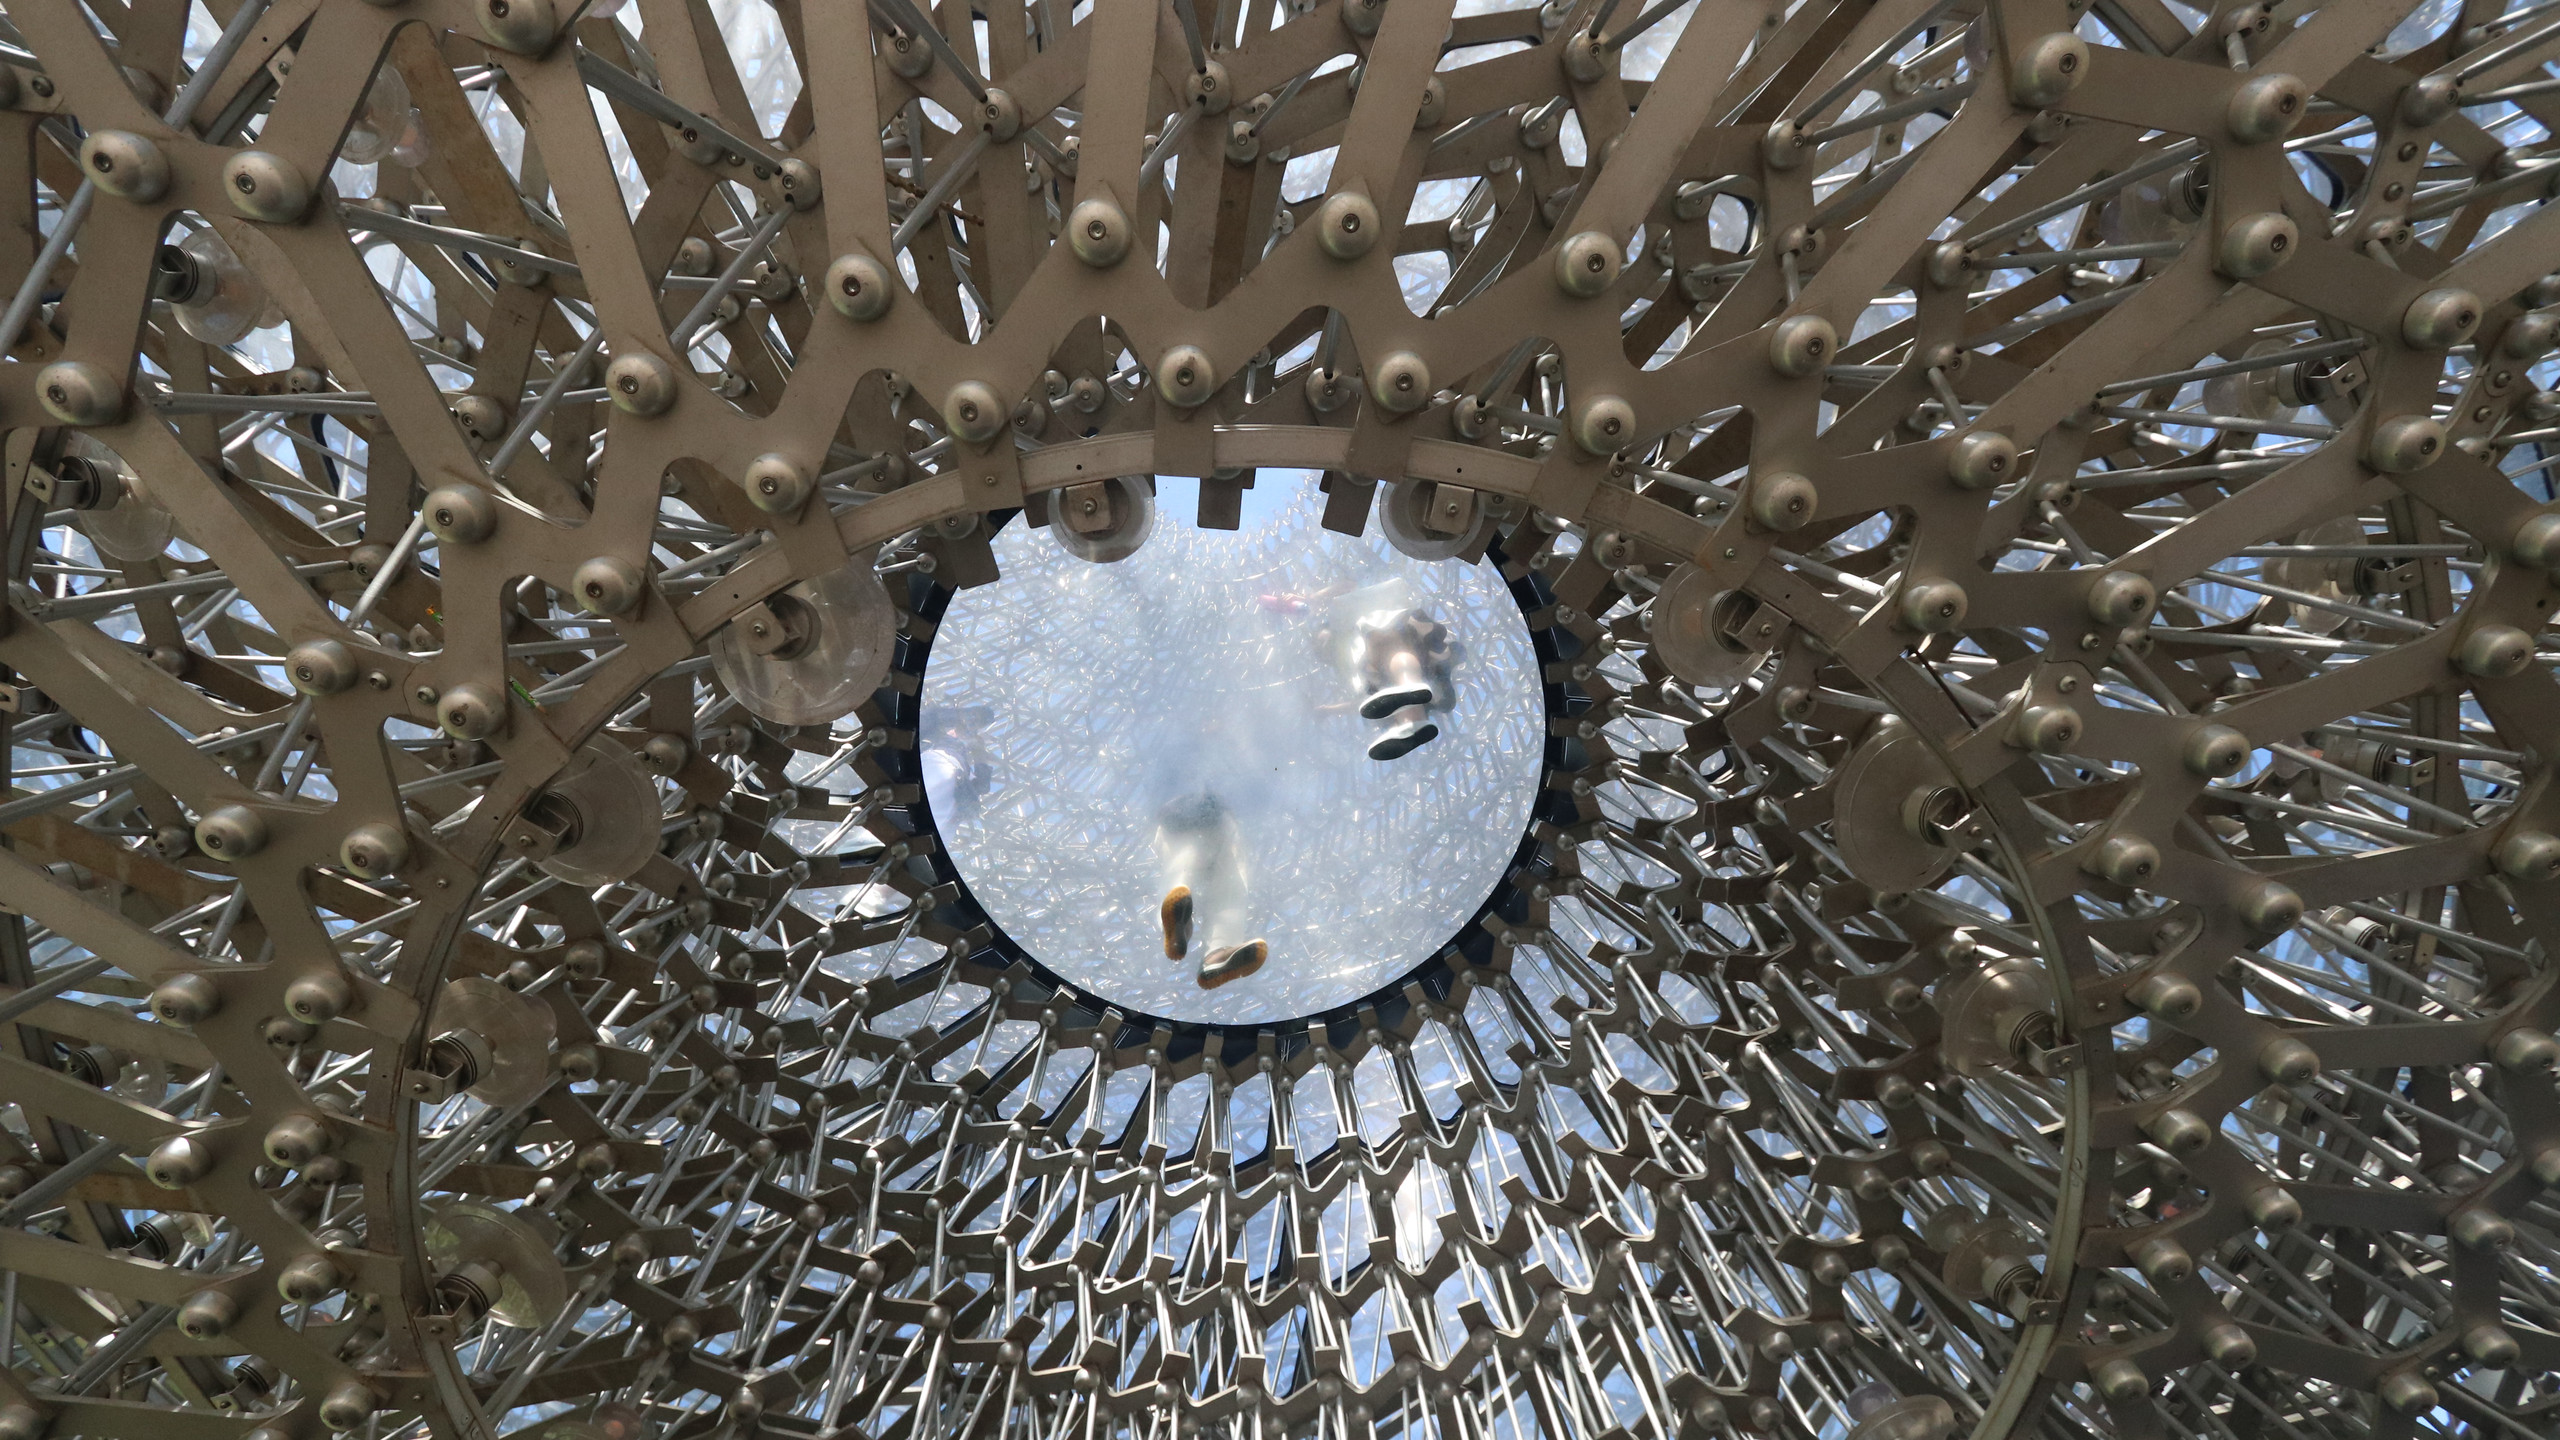 RawAssembly - The Hive - Kew Gardens